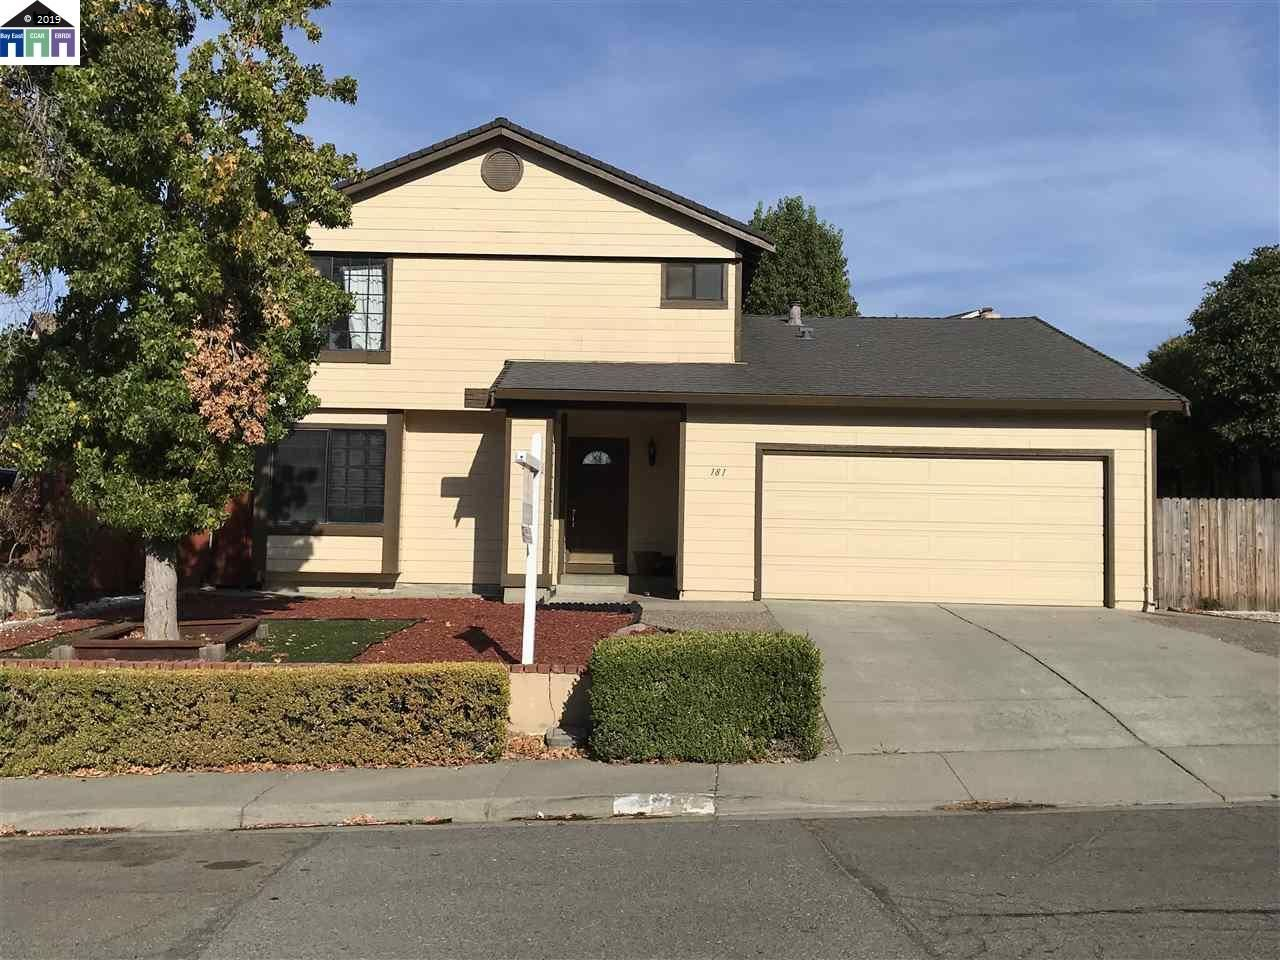 Photo for 181 Pearce, HERCULES, CA 94547 (MLS # 40888567)